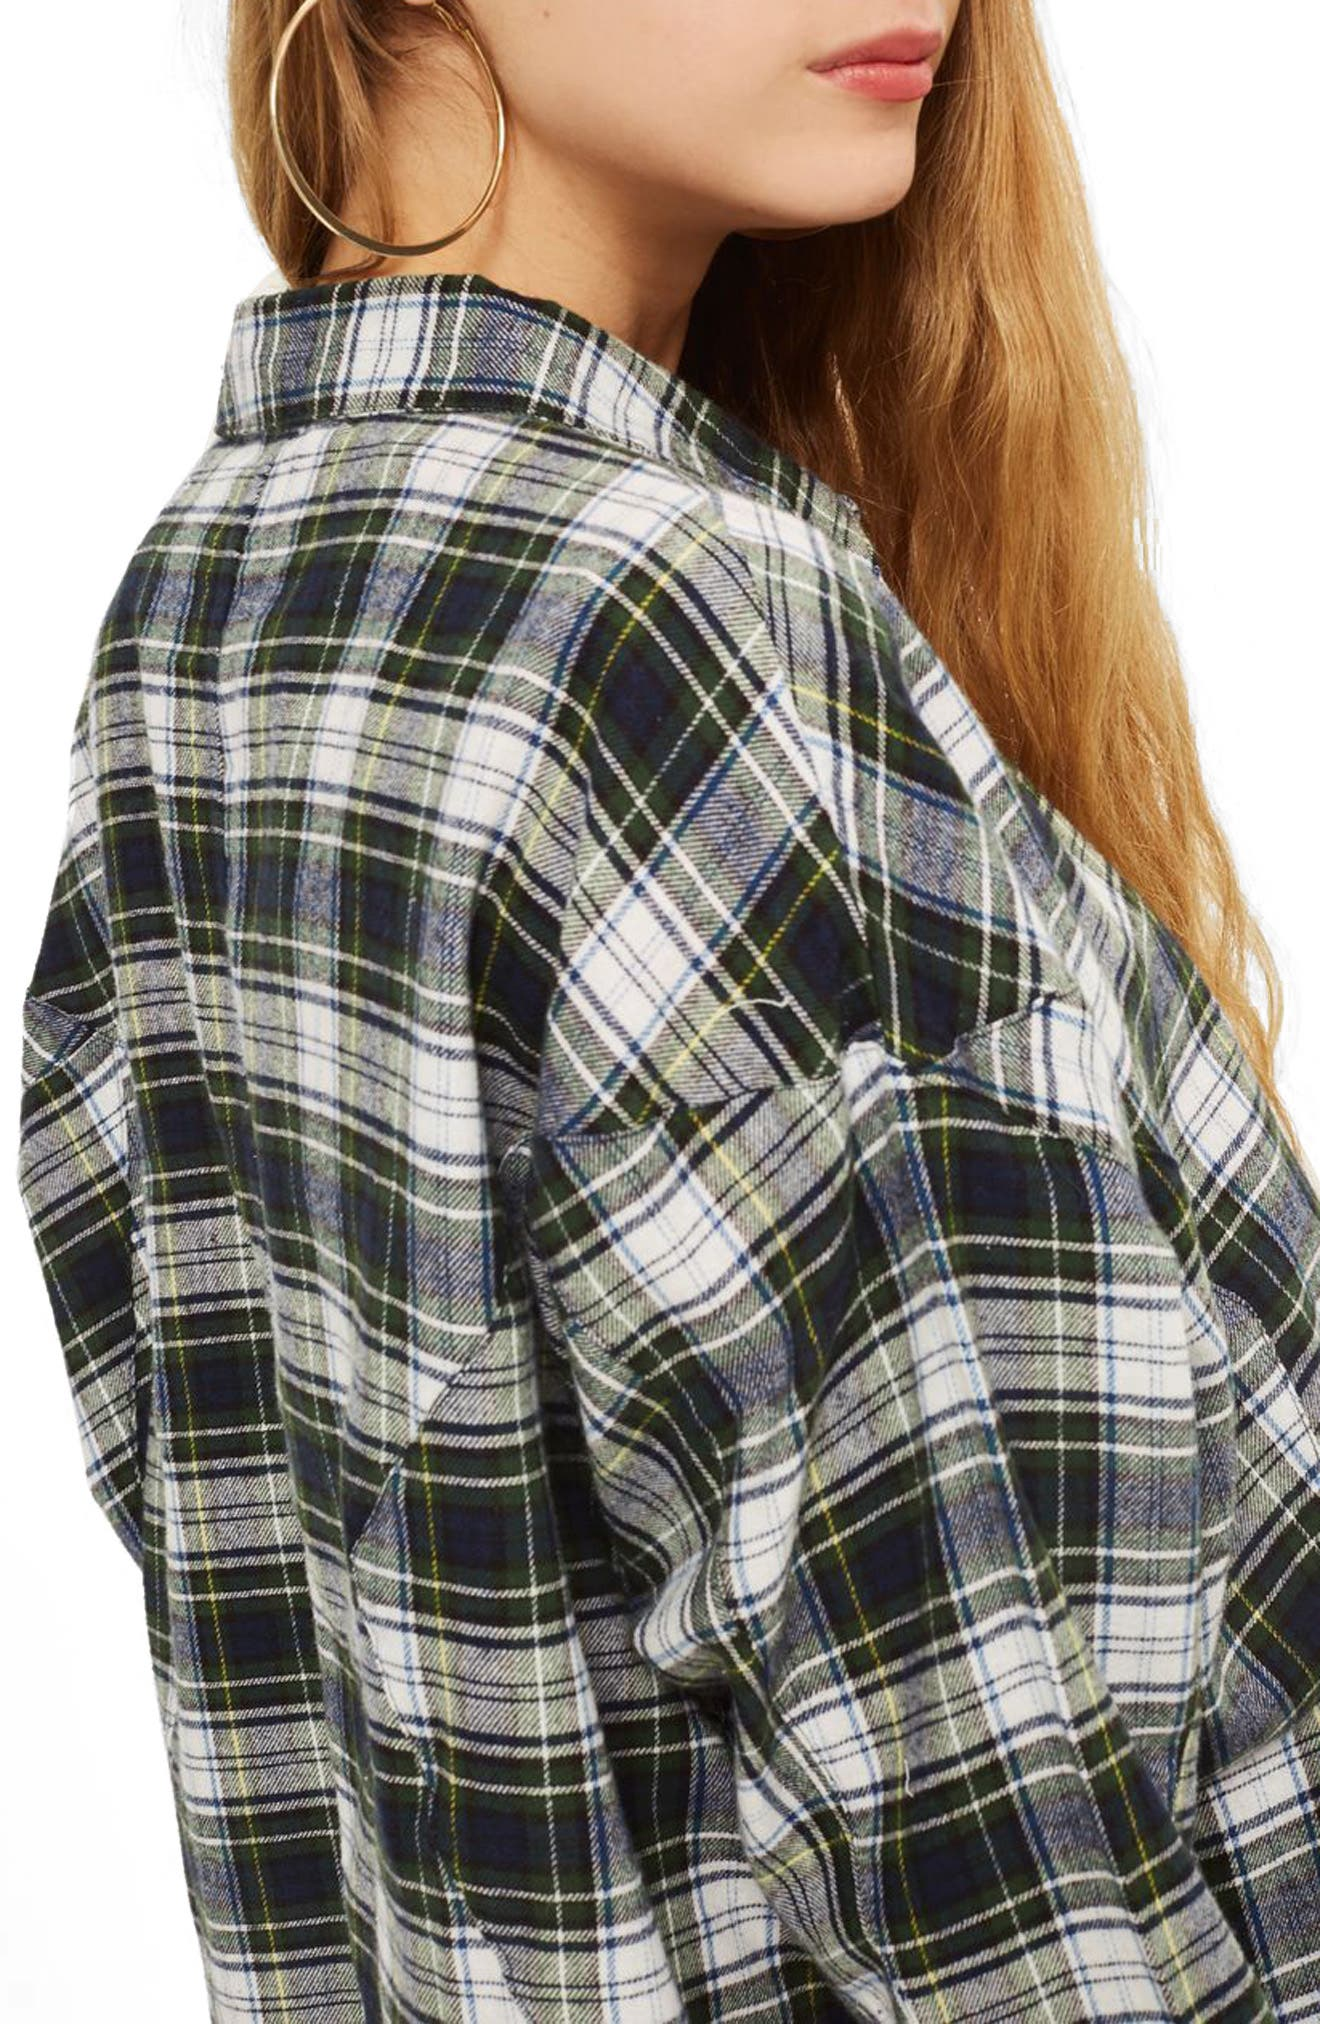 Boxy Plaid Shirt,                             Alternate thumbnail 2, color,                             300